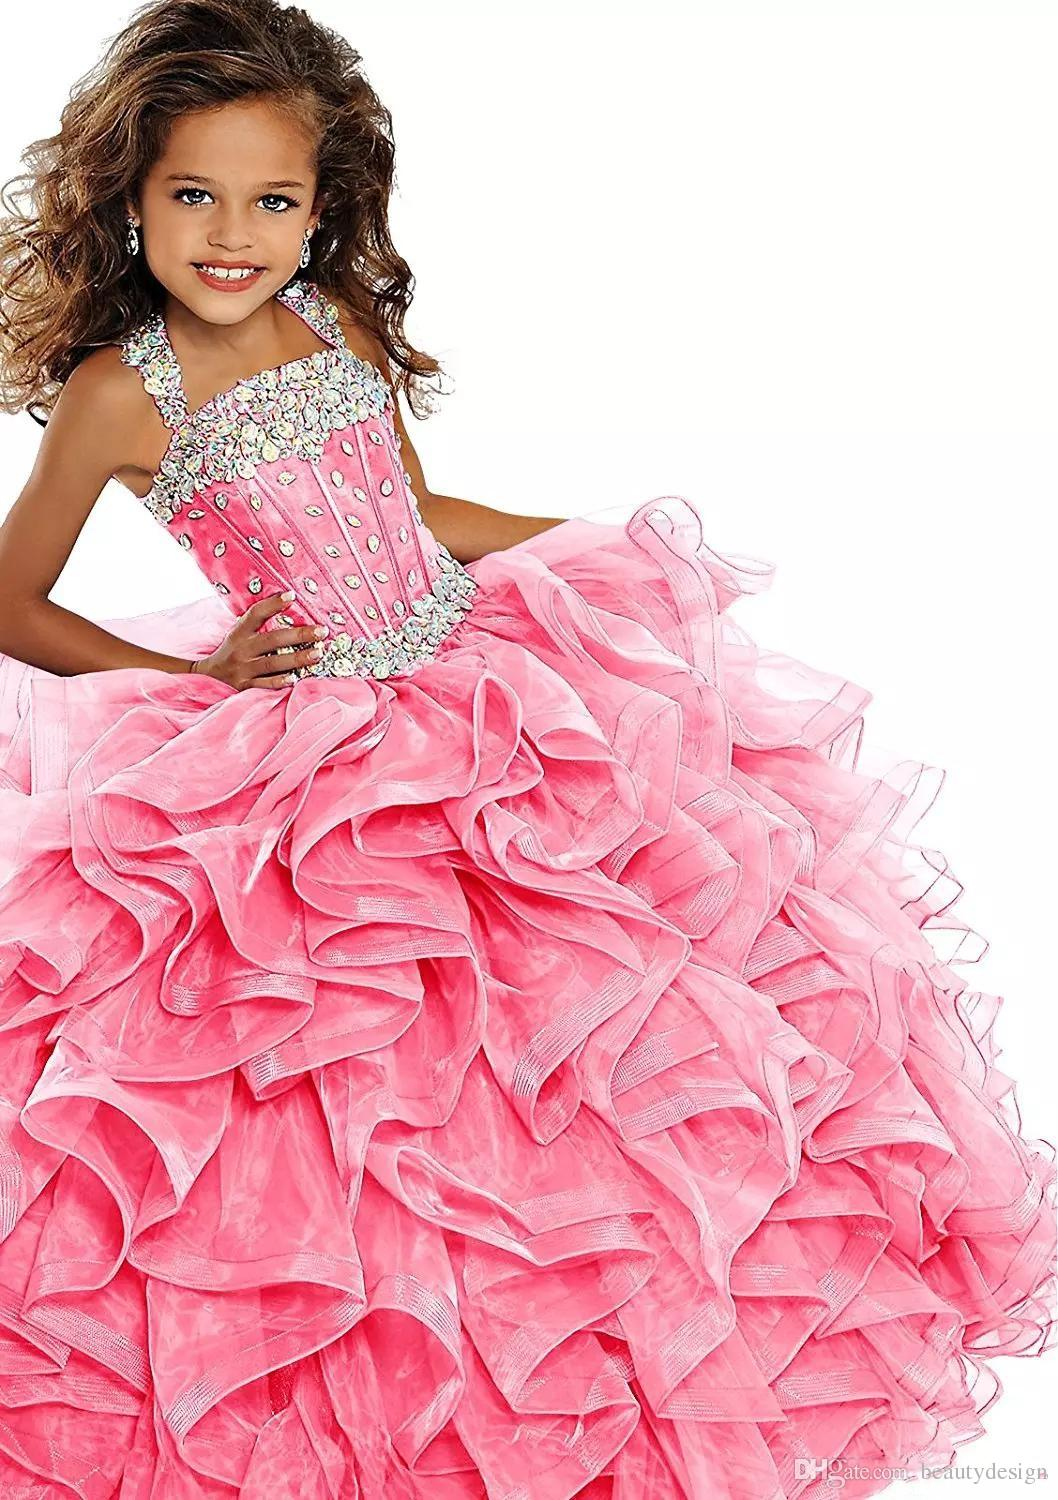 2018 Princess Emerald Green Girls Pageant Dress Ball Gown Long Turquoise Organza Crystals Ruffled Flower Girls Birthday Party Dresses